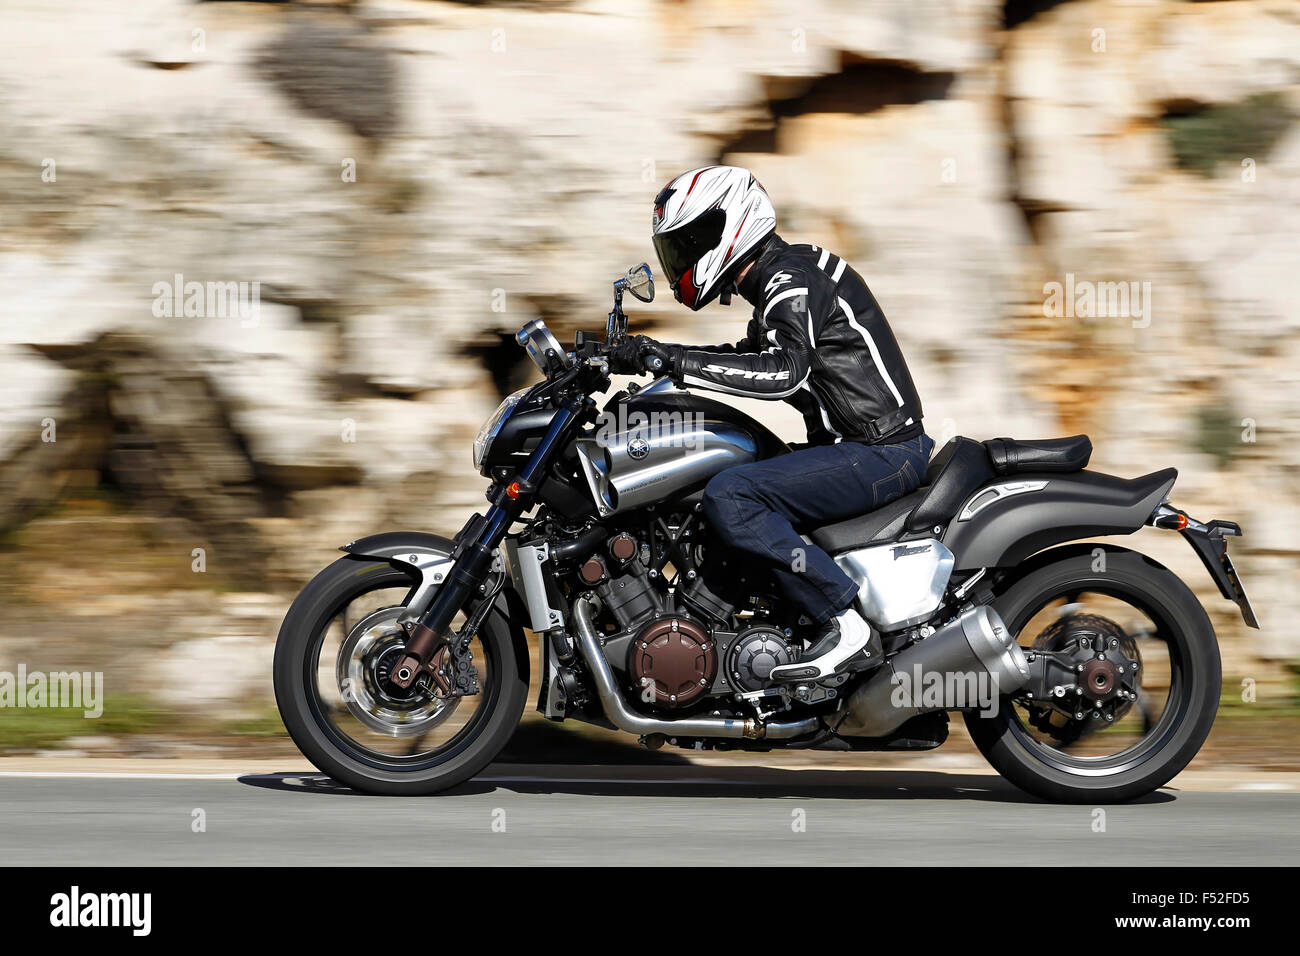 Motorcycle, Speedbike, Yamaha Vmax, panned, left side, year